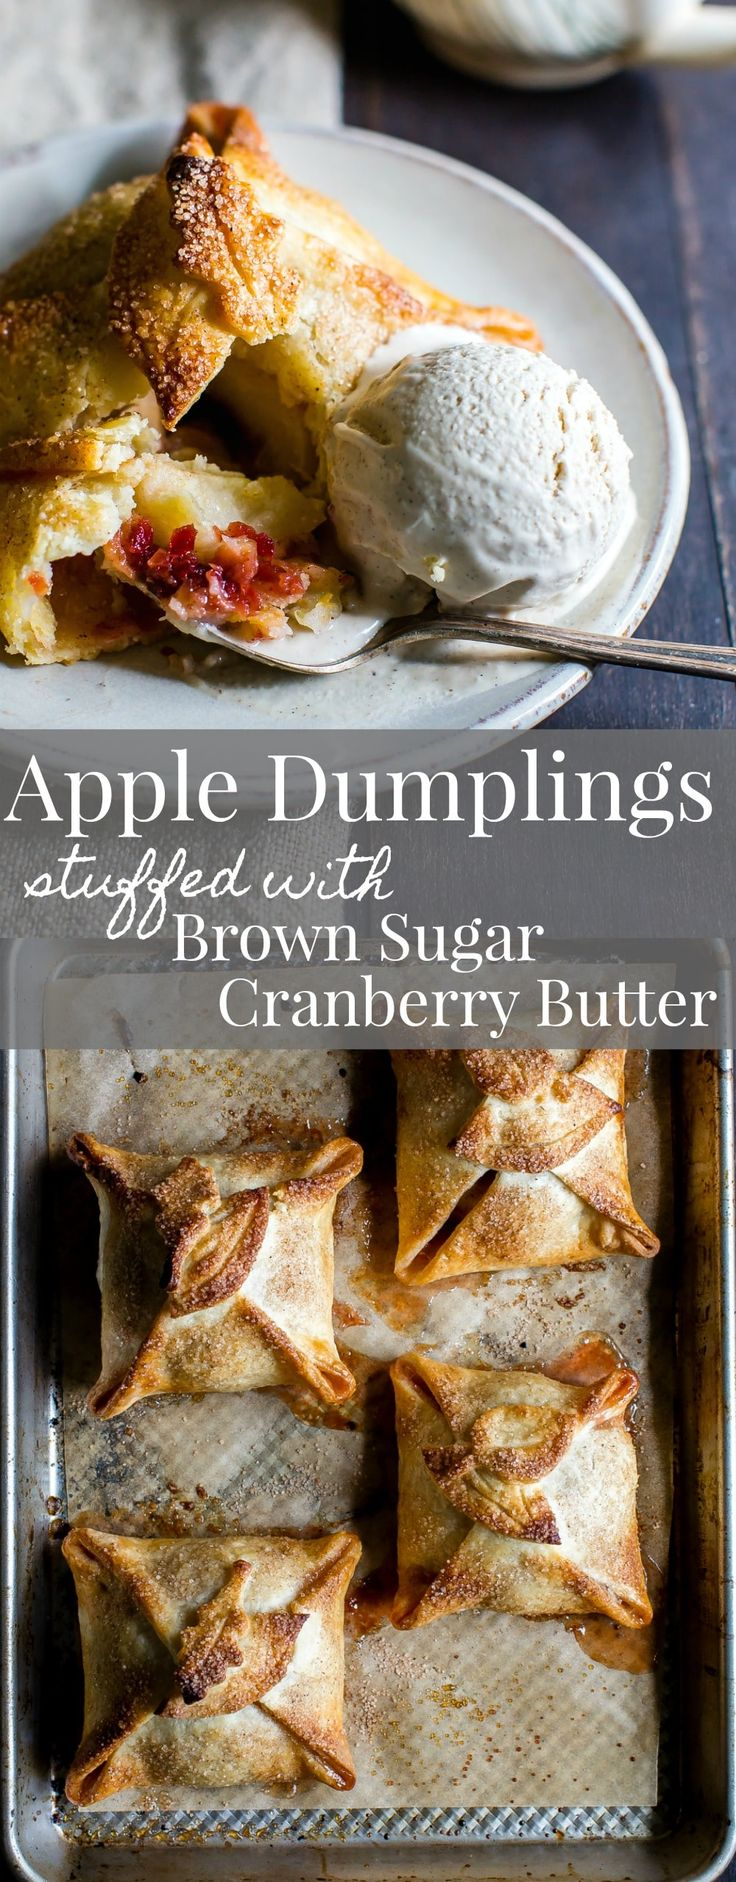 Share Apple Dumplings Stuffed With Brown Sugar Cranberry Butter warm right out of the oven with vanilla bean ice cream and/or your favorite caramel sauce.